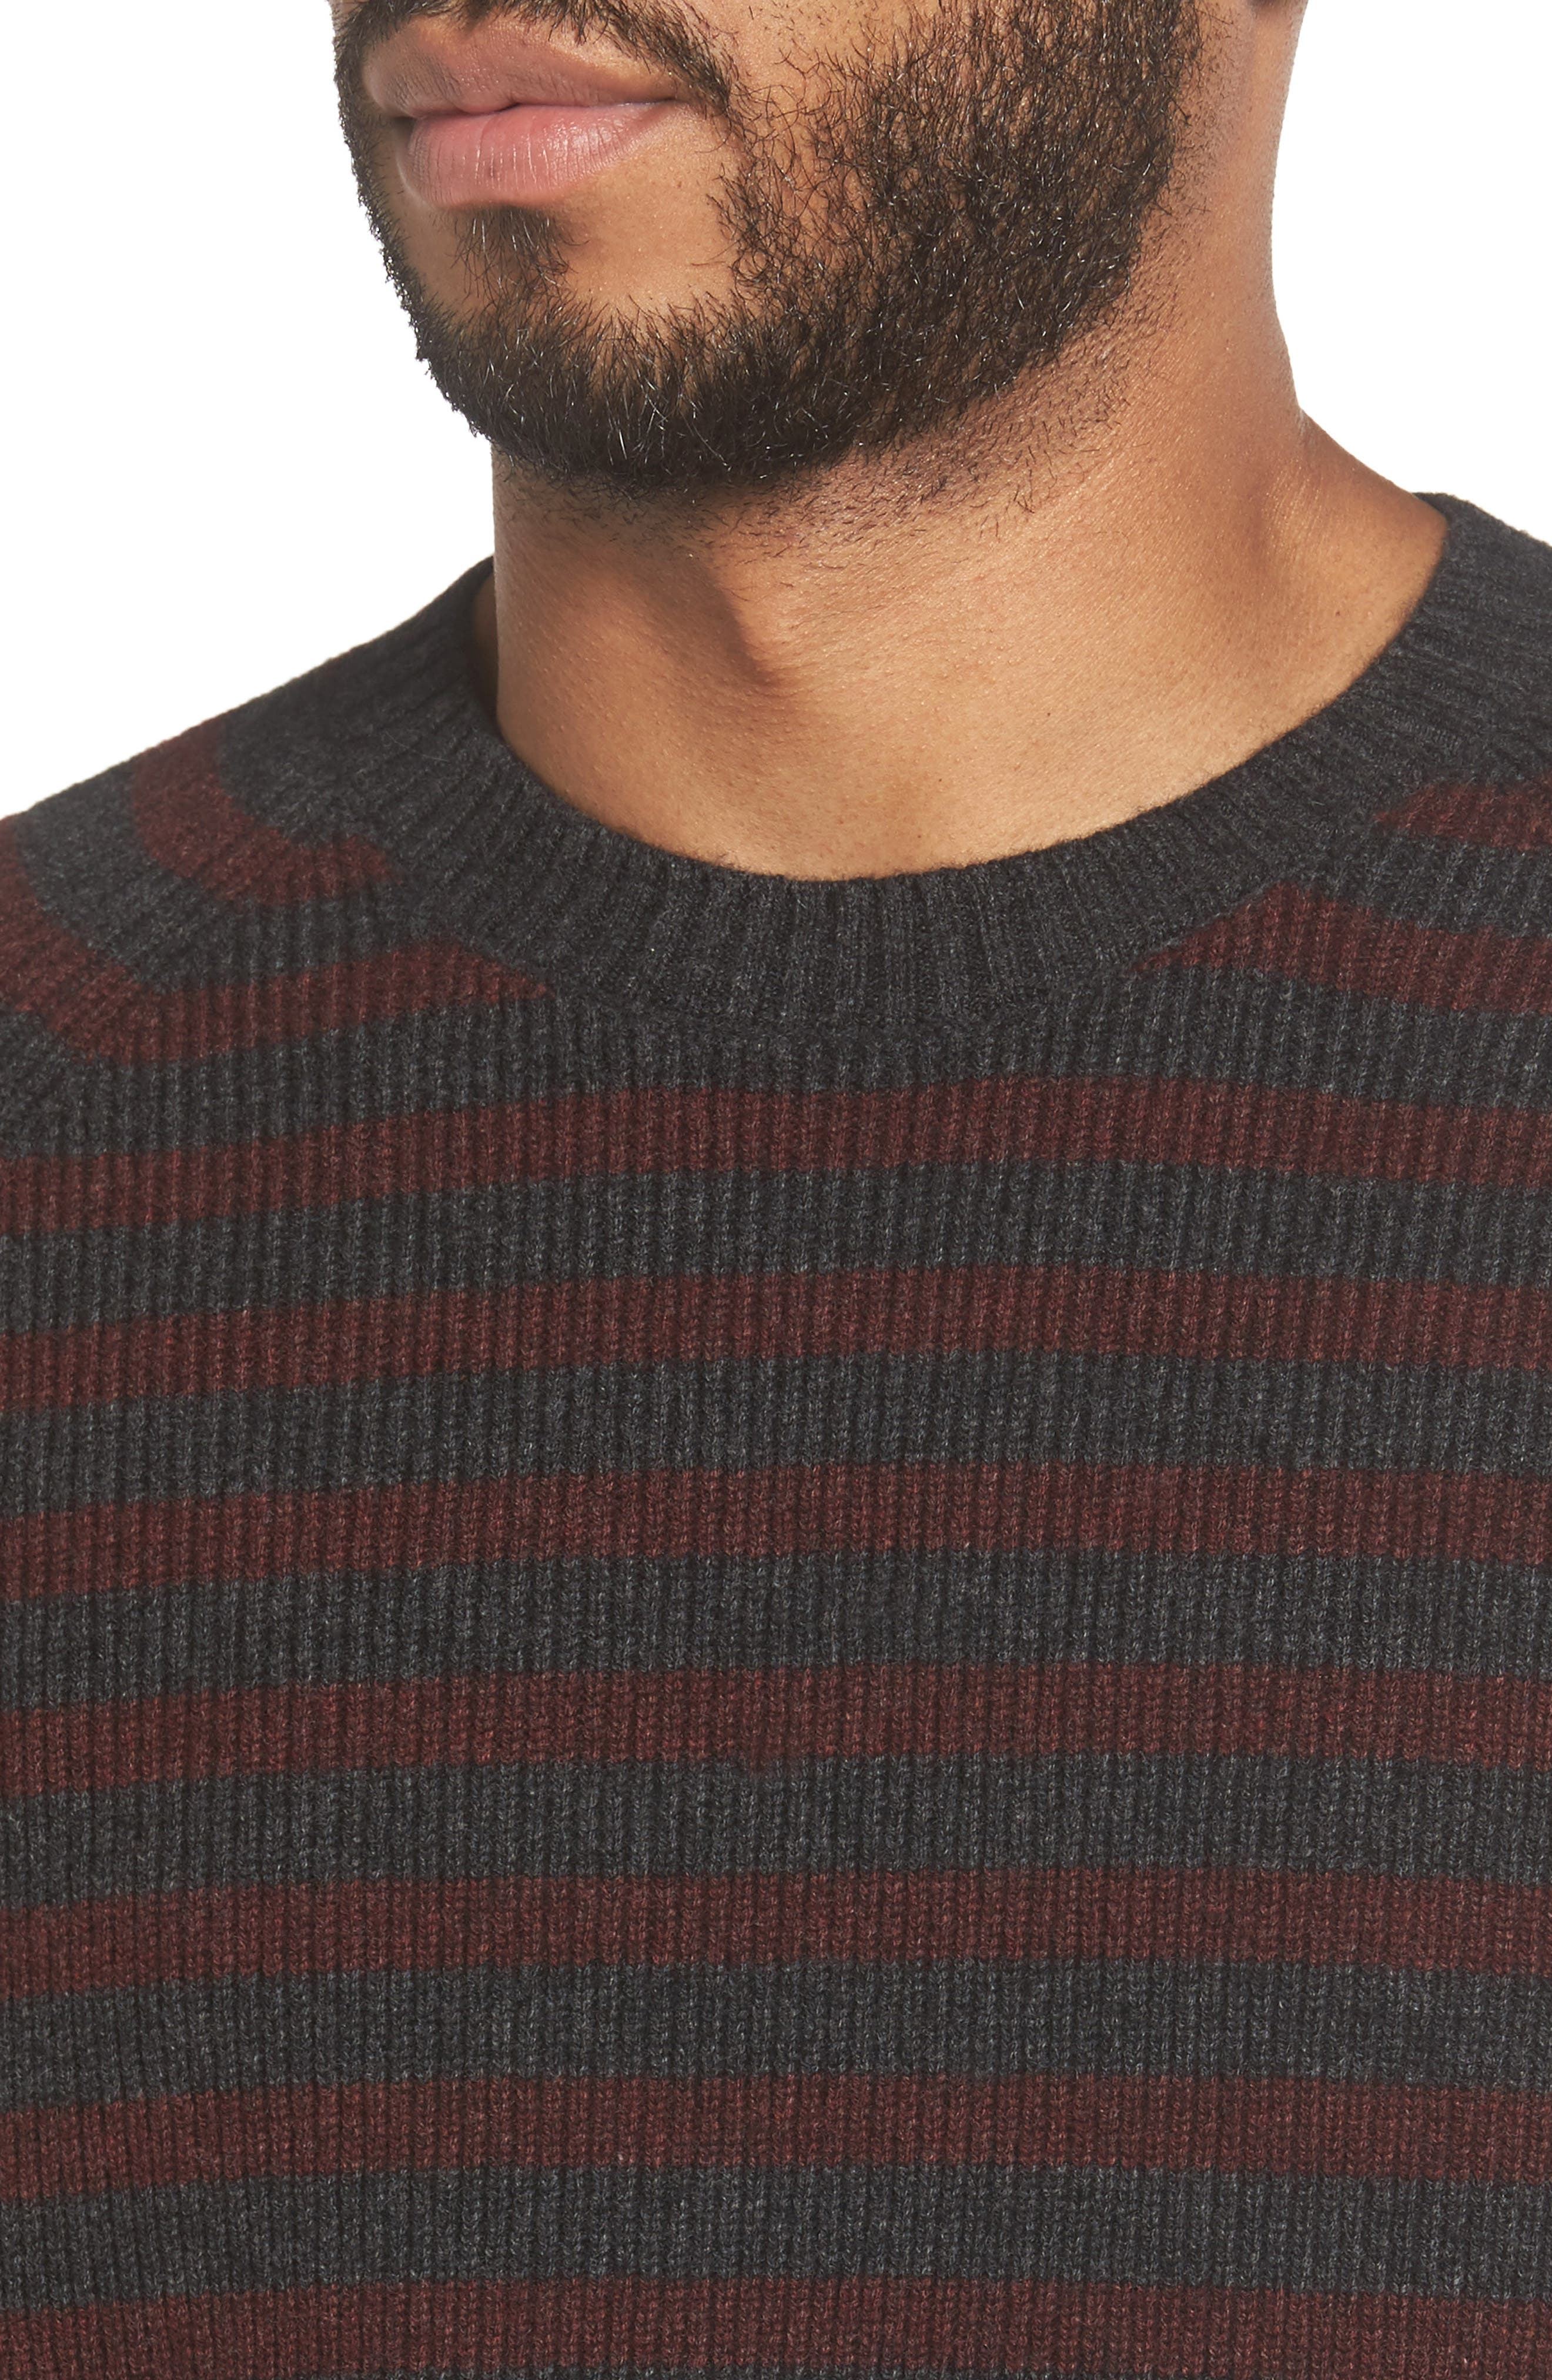 Stripe Wool & Cashmere Sweater,                             Alternate thumbnail 4, color,                             093